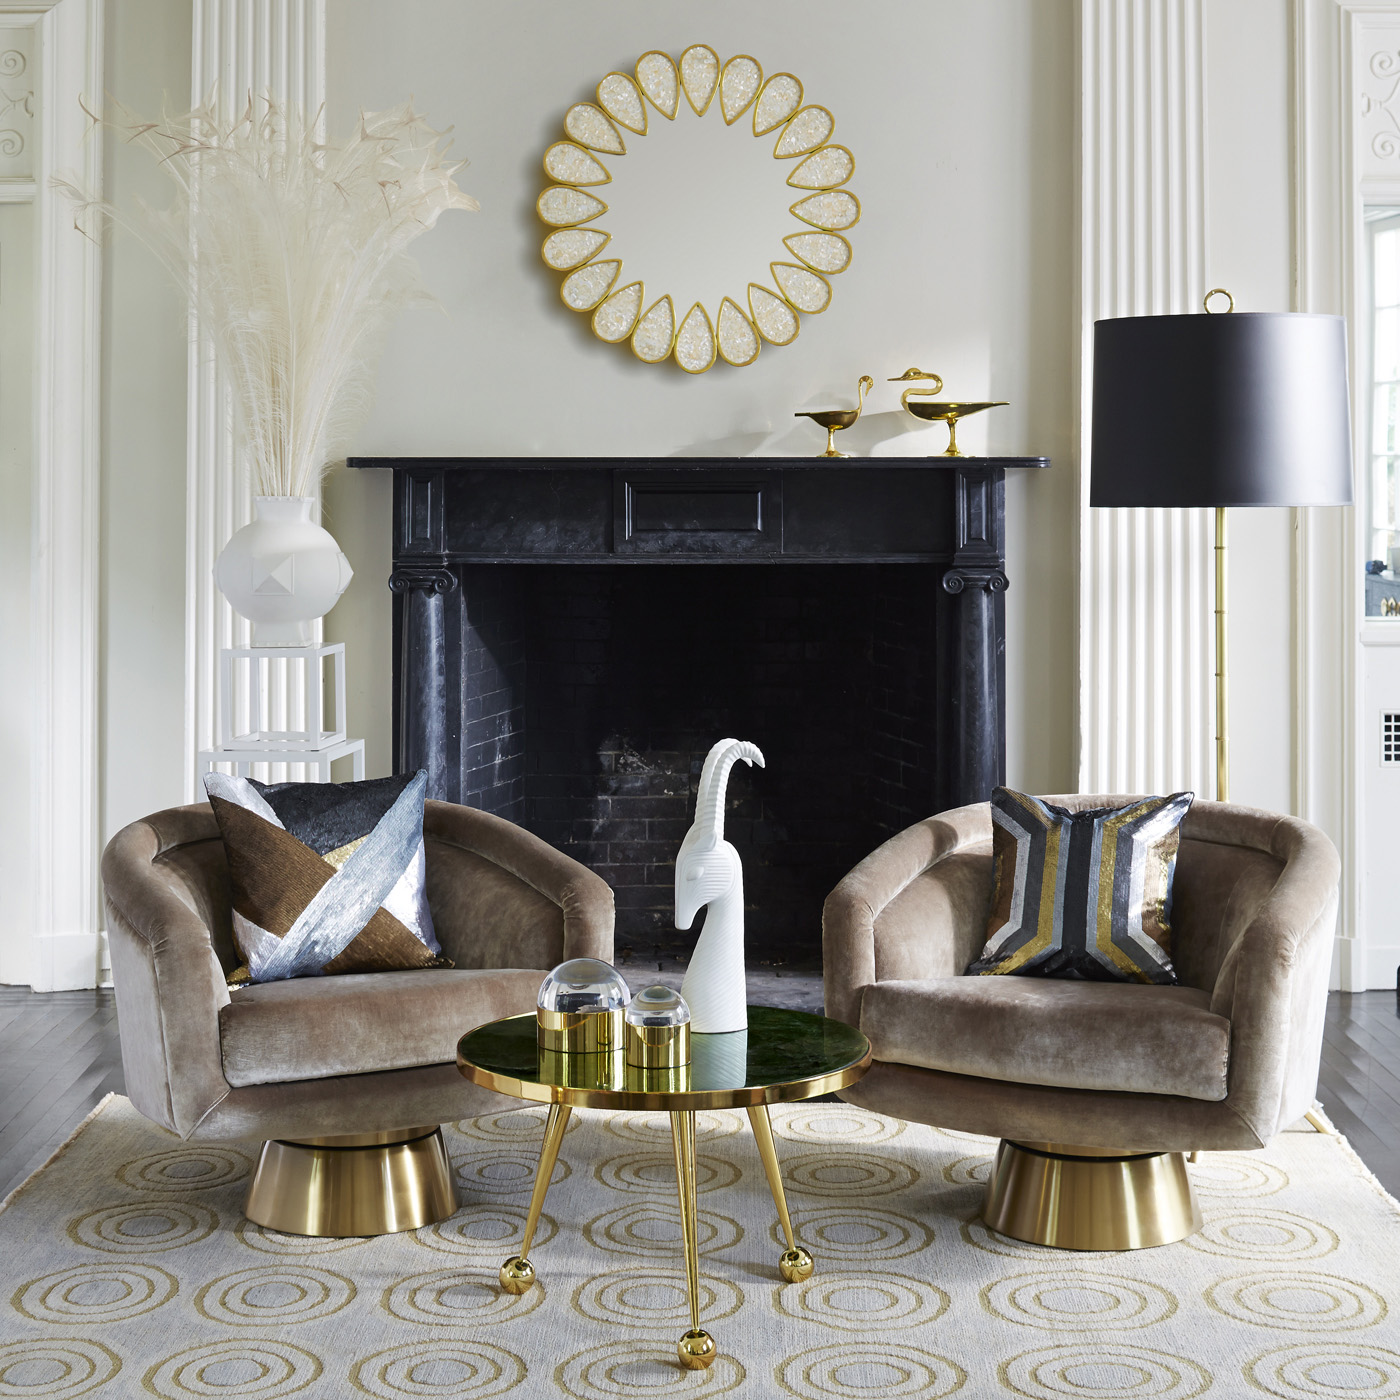 jonathan adler winter living rooms 10 cheerful winter living rooms by jonathan adler 10 cheerful winter